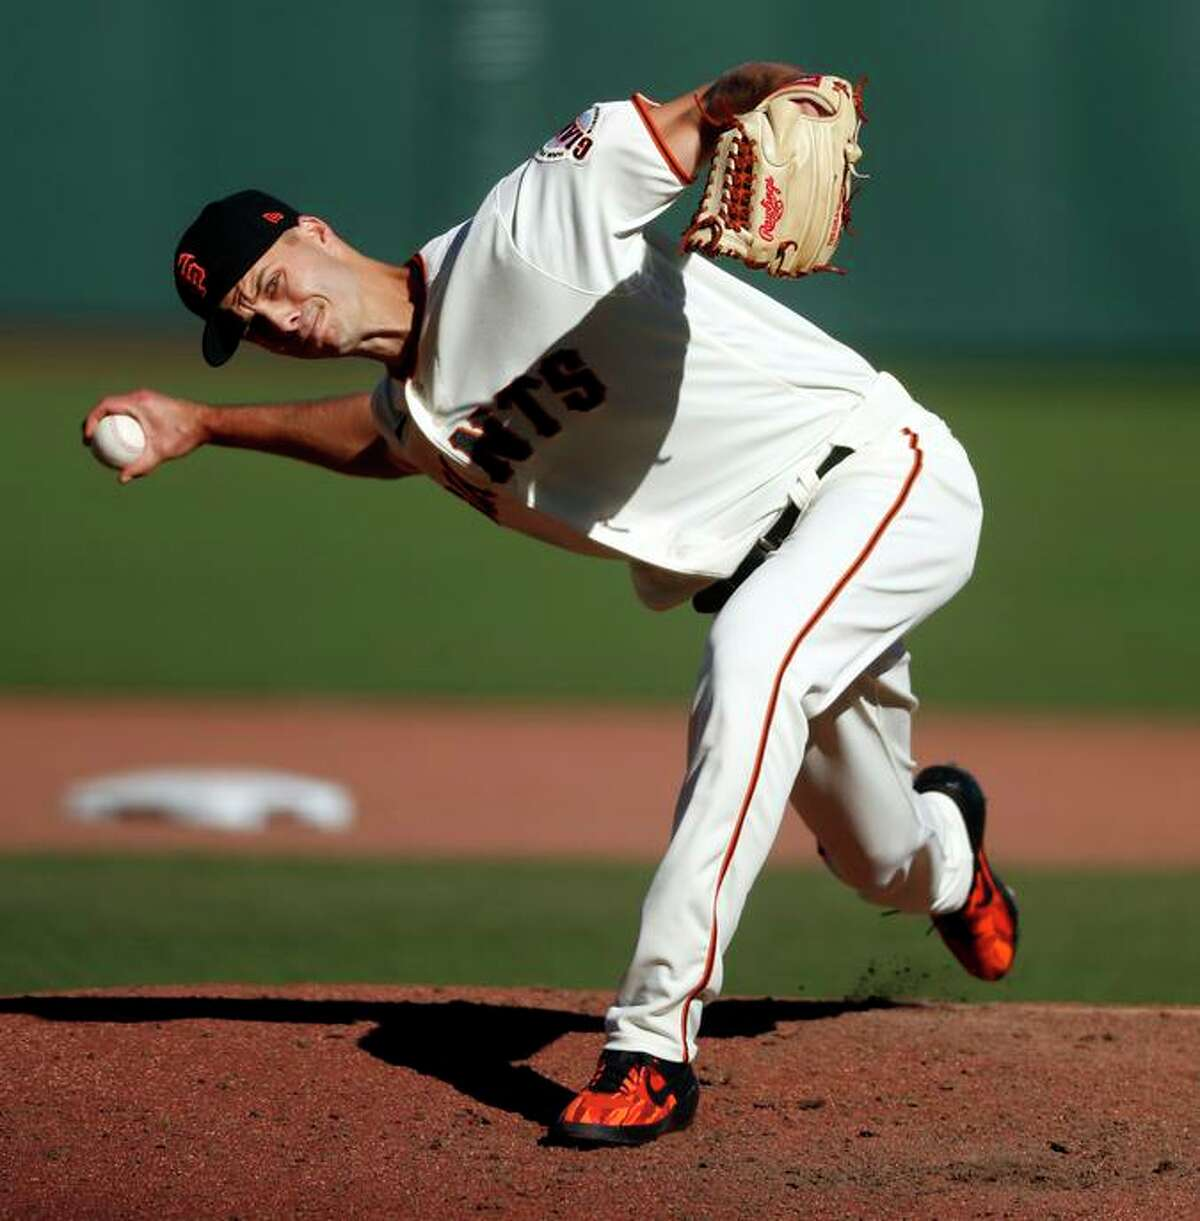 A side-by-side photo of brothers Taylor Rogers #55 of the Minnesota Twins (L) and Tyler Rogers #71 of the San Francisco Giants (R)